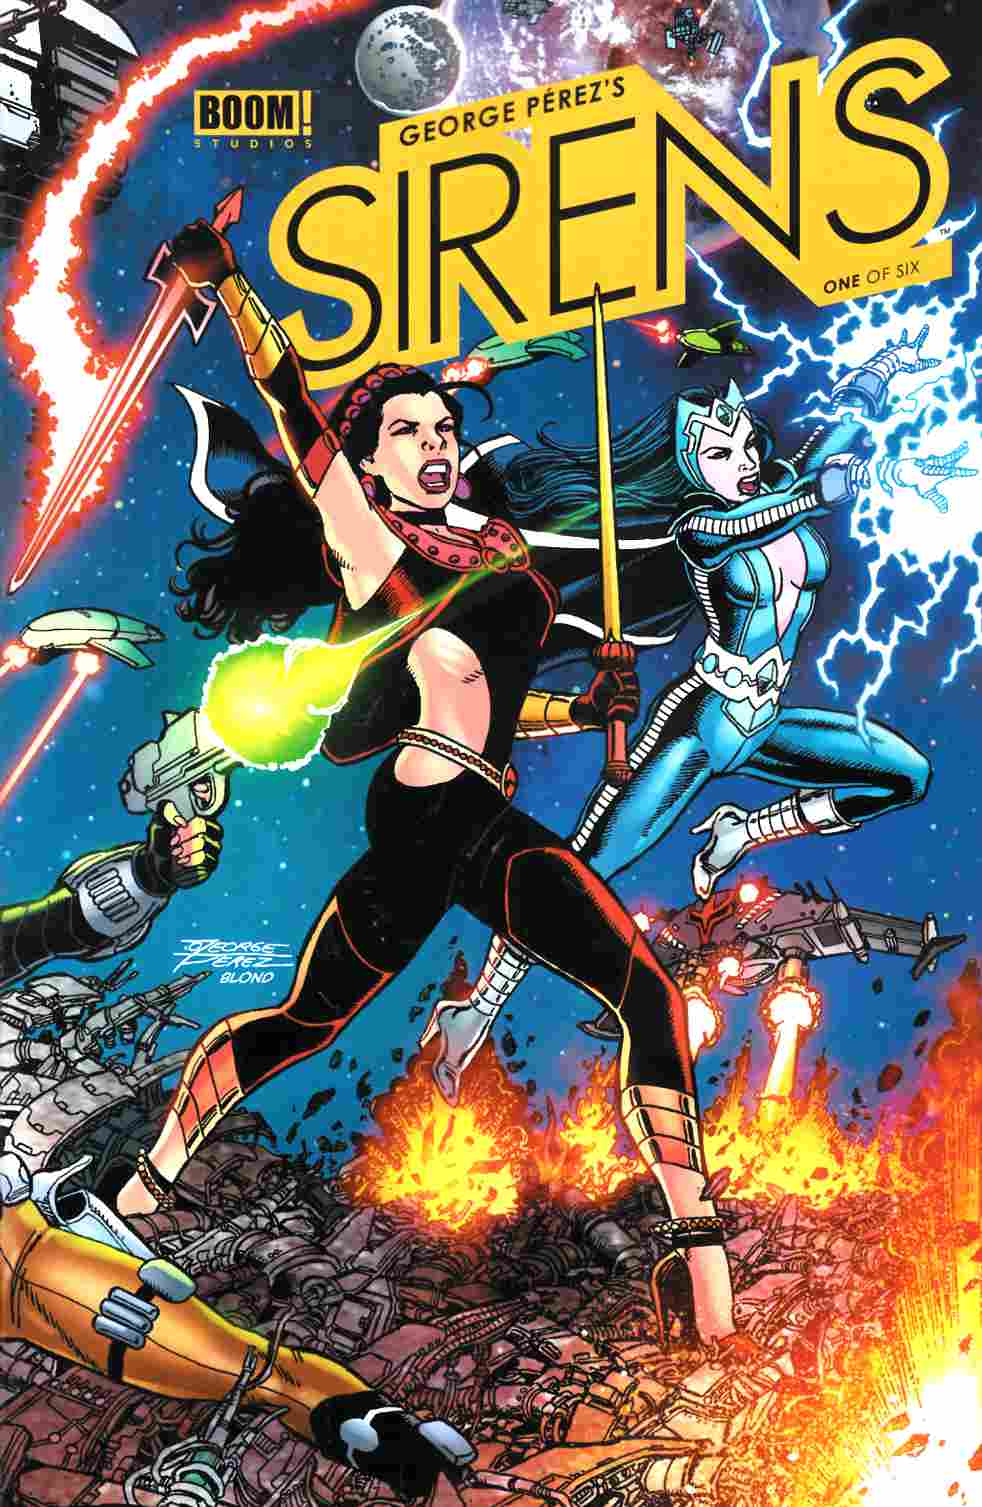 George Perez Sirens #1 Cover A [Comic]